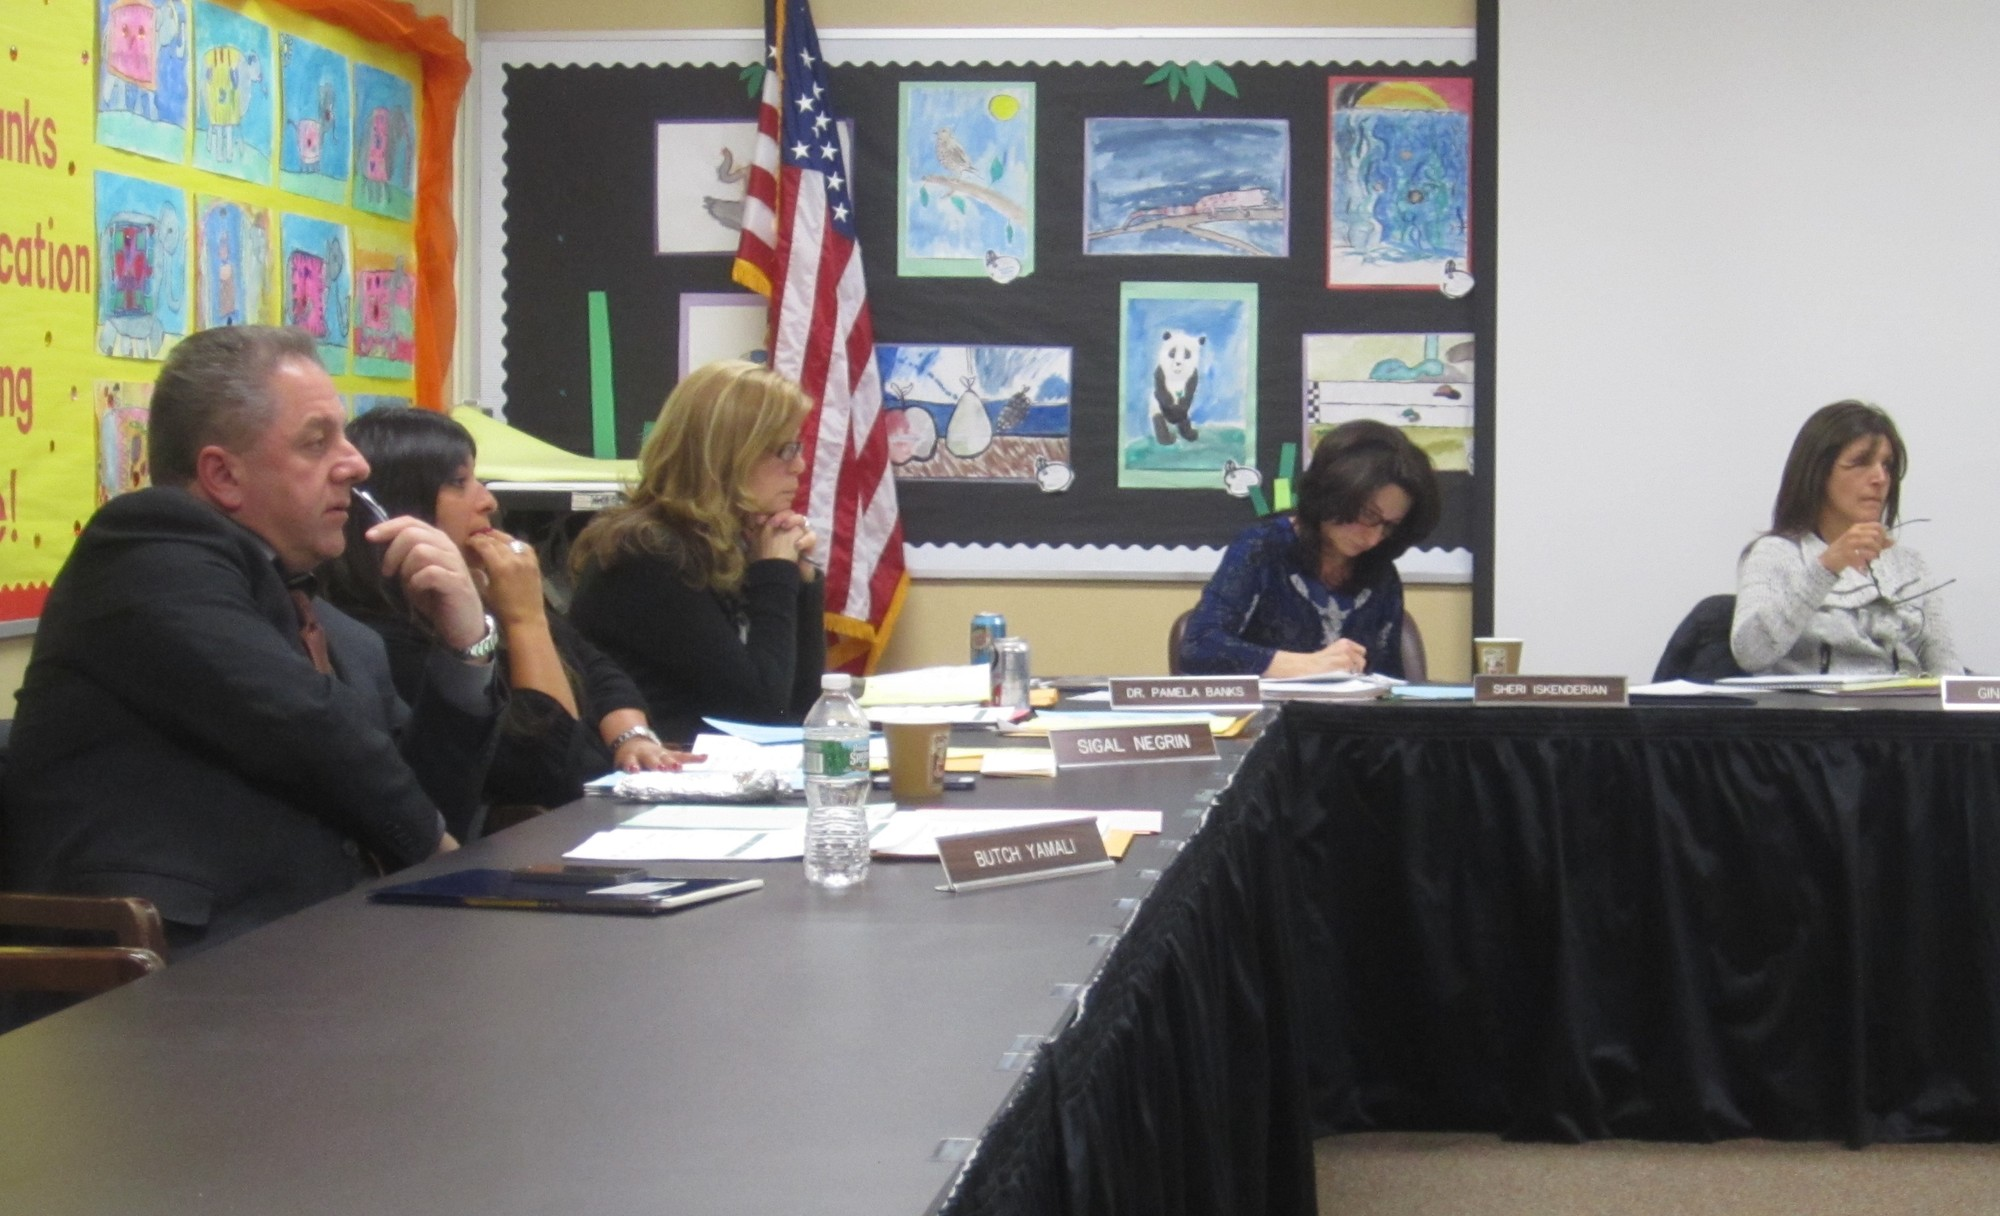 The Merrick Board of Education did not vote on a measure that would have extended tax breaks to local veterans. Above, the Merrick School District Board of Education met earlier this year.